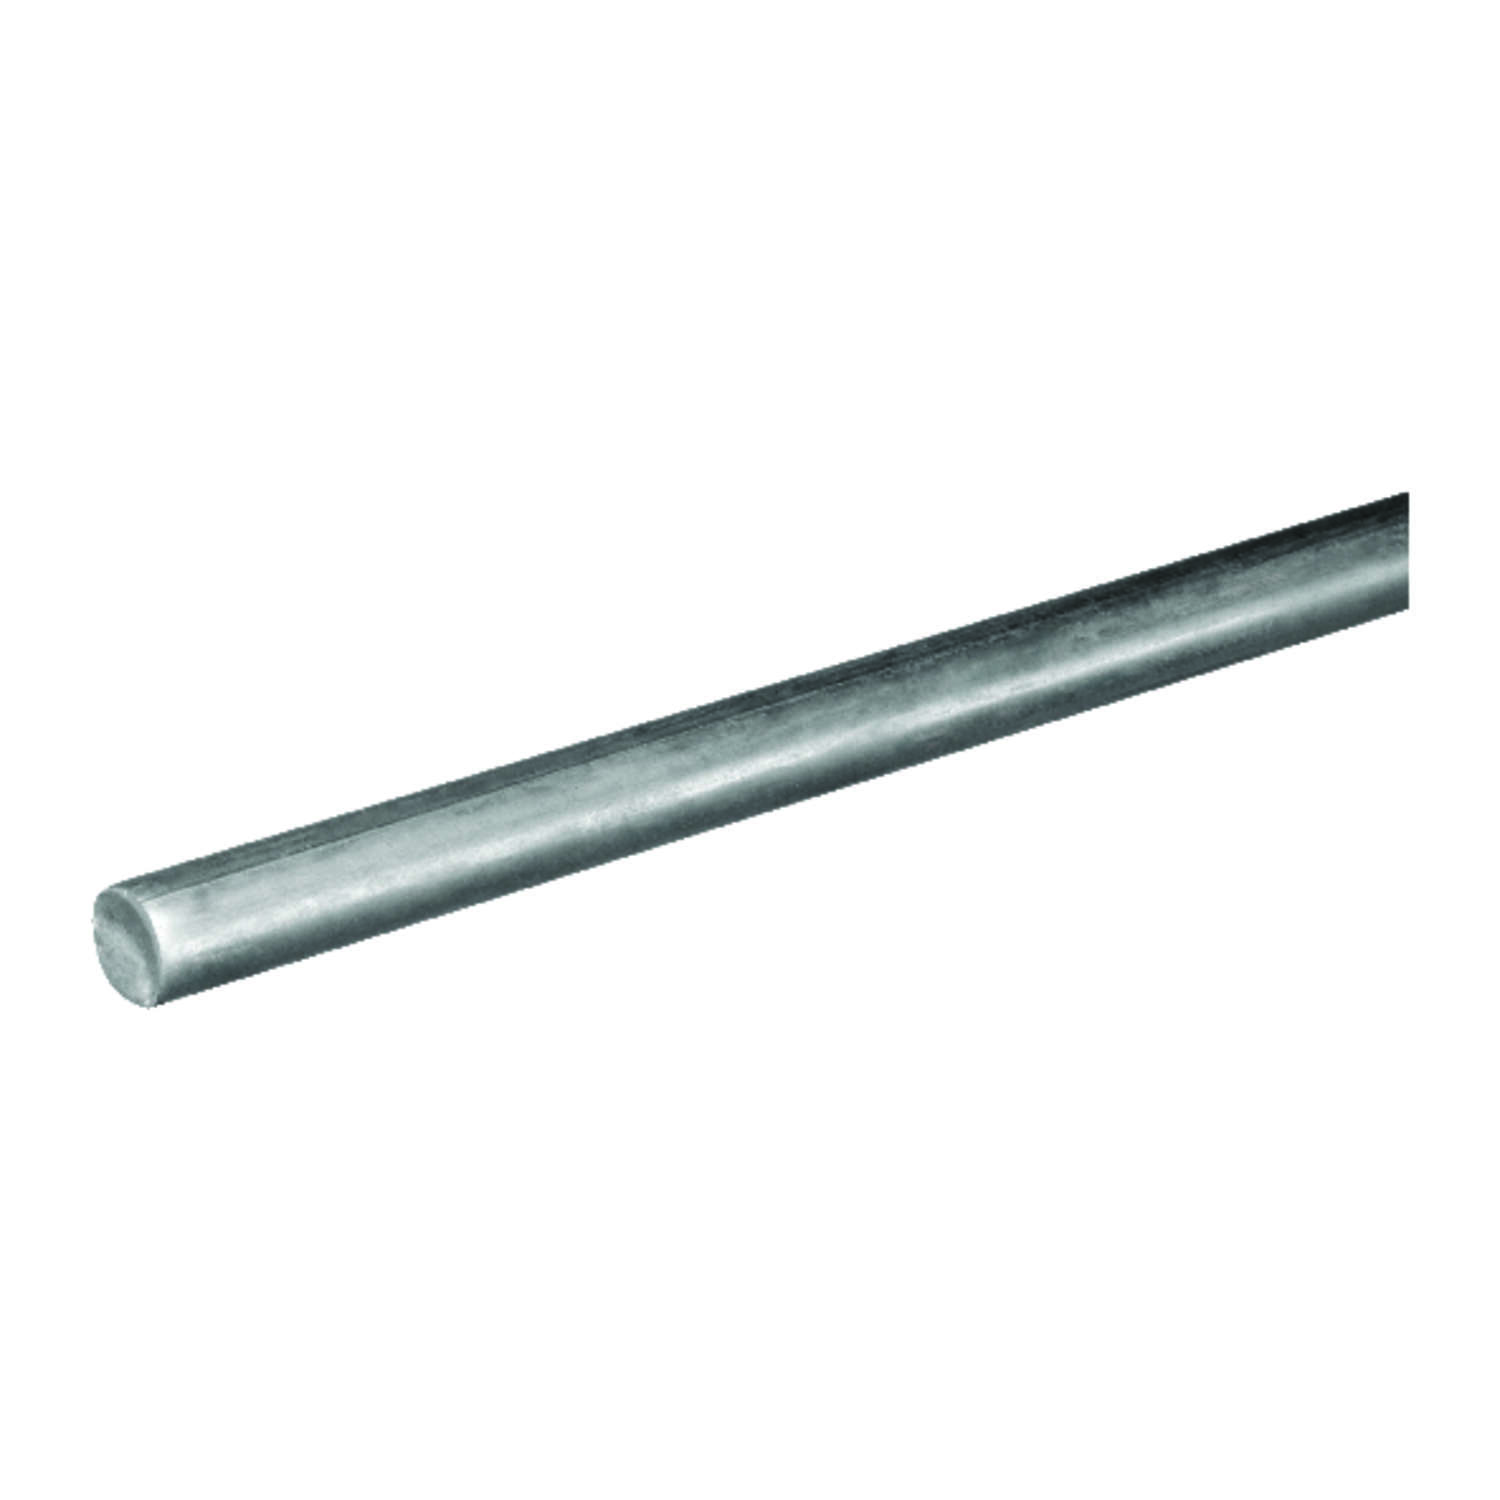 Boltmaster  5/8 in. Dia. x 36 in. L Steel  Unthreaded Rod